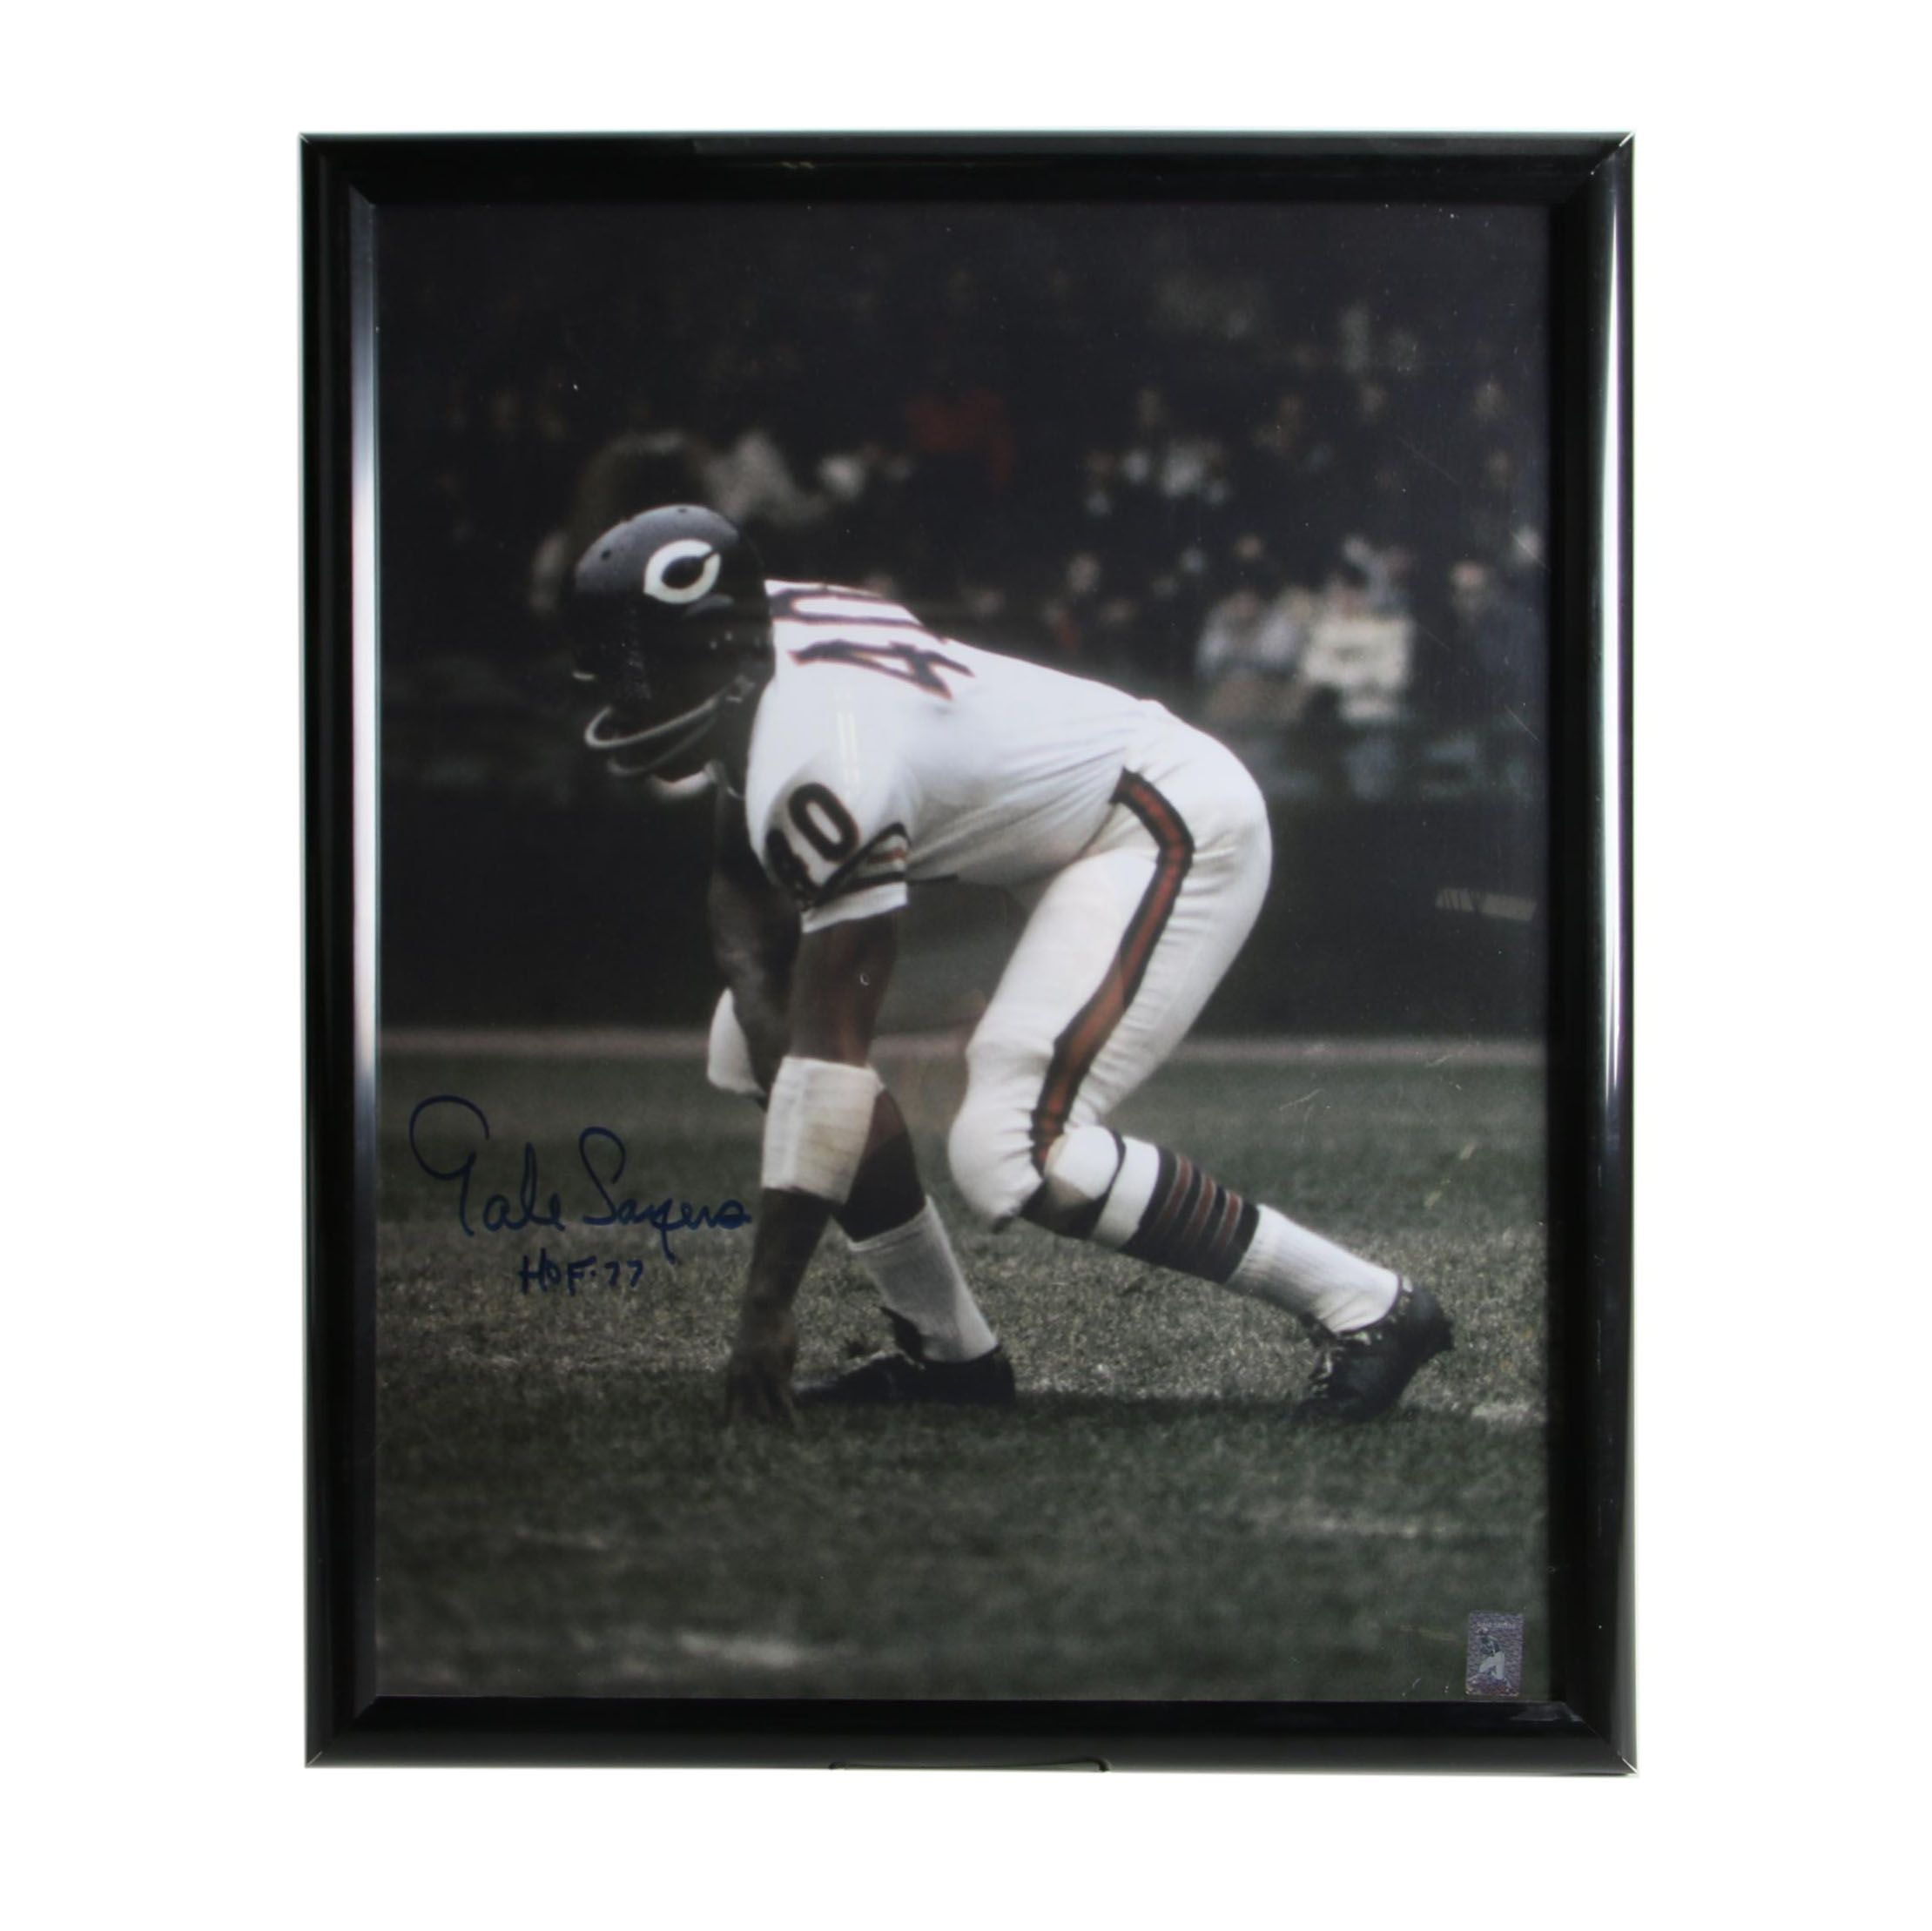 Gale Sayers Autographed Framed Photo